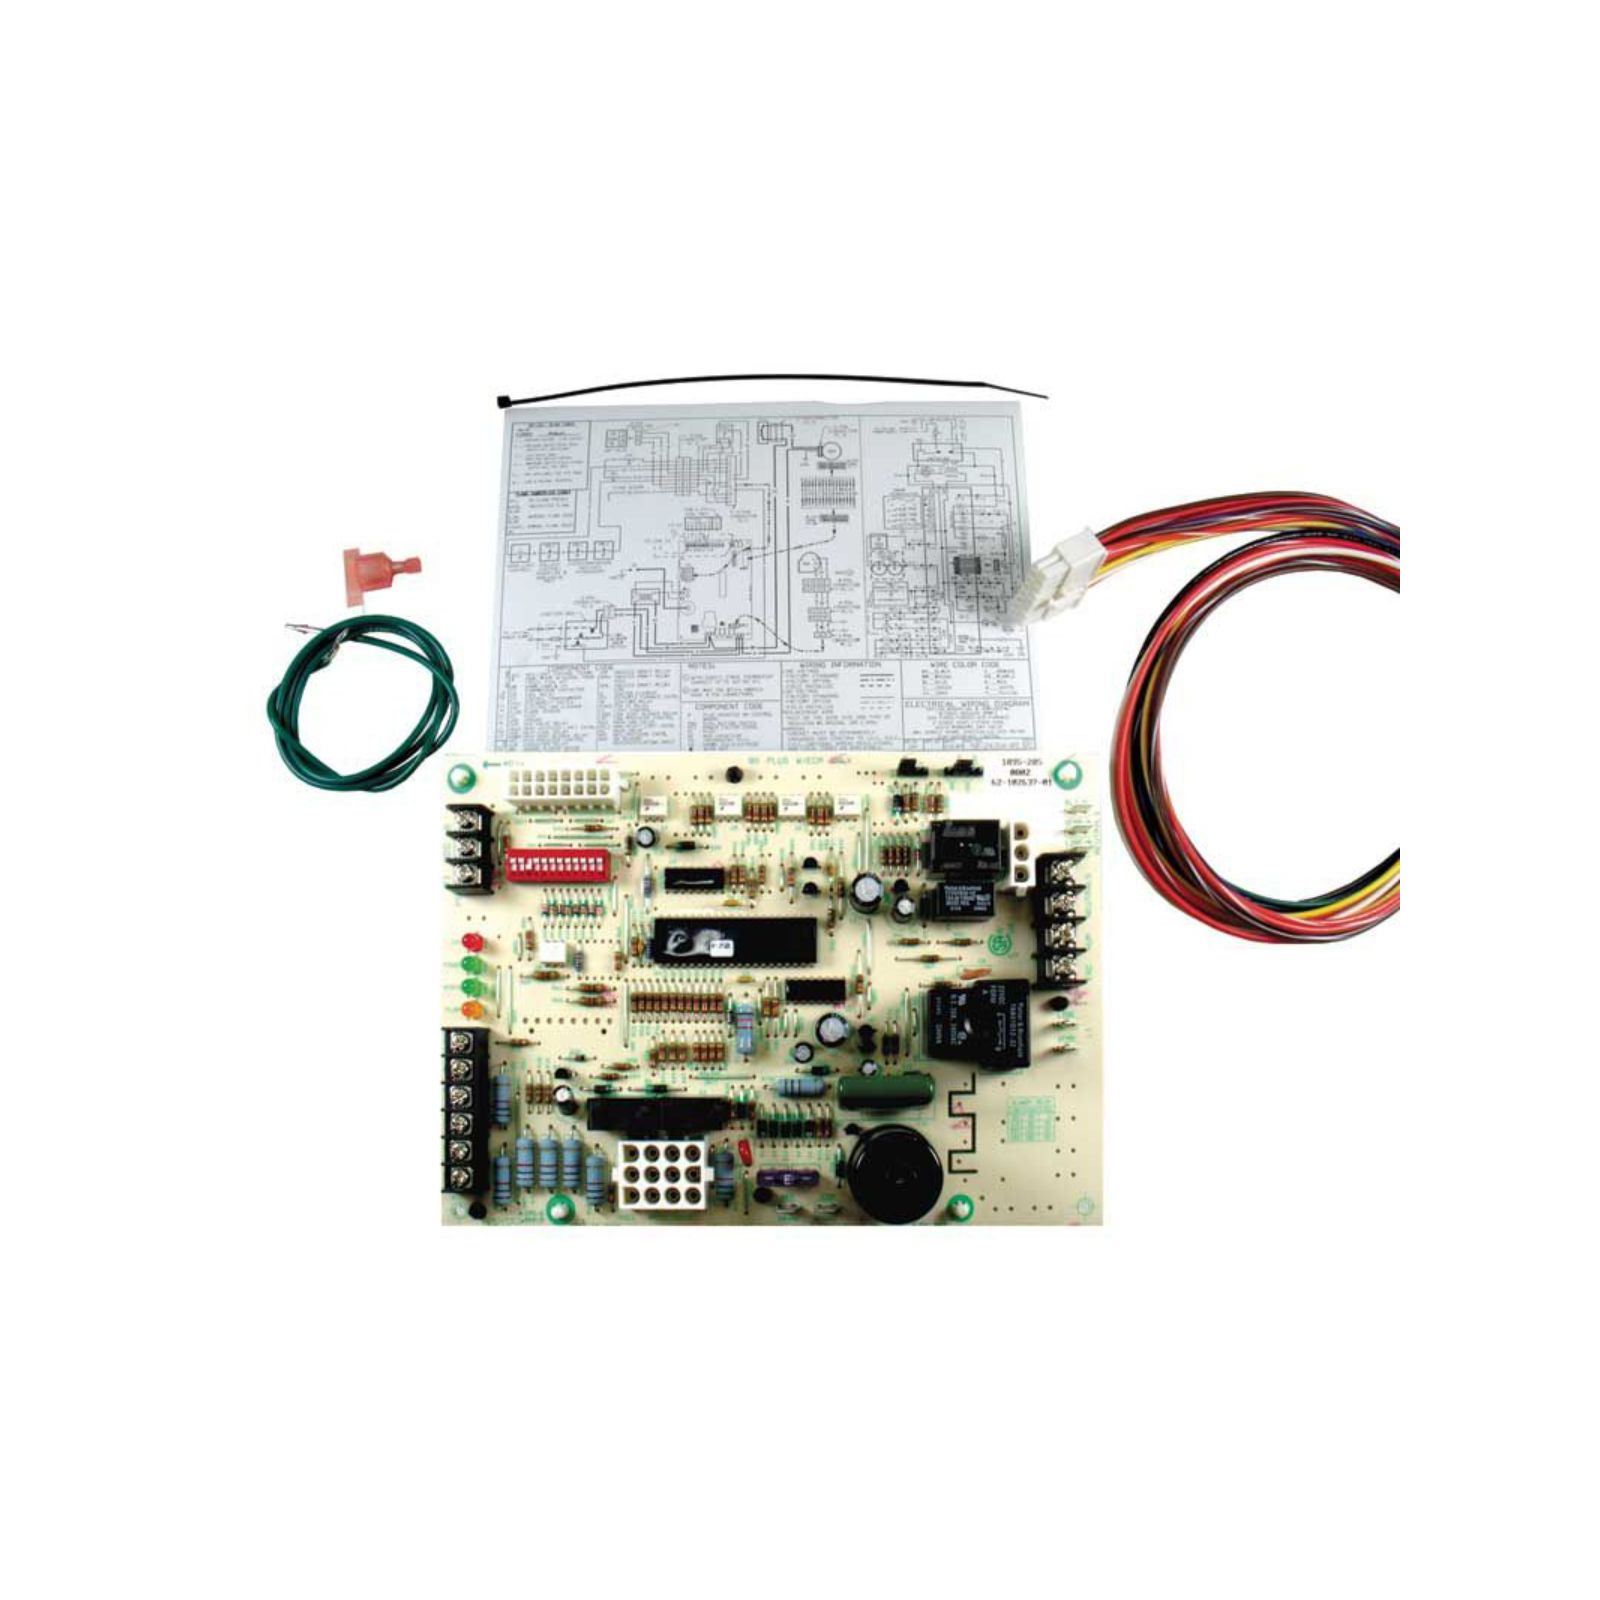 PROTECH 62-102637-81 - Integrated Furnace Control Board (IFC)